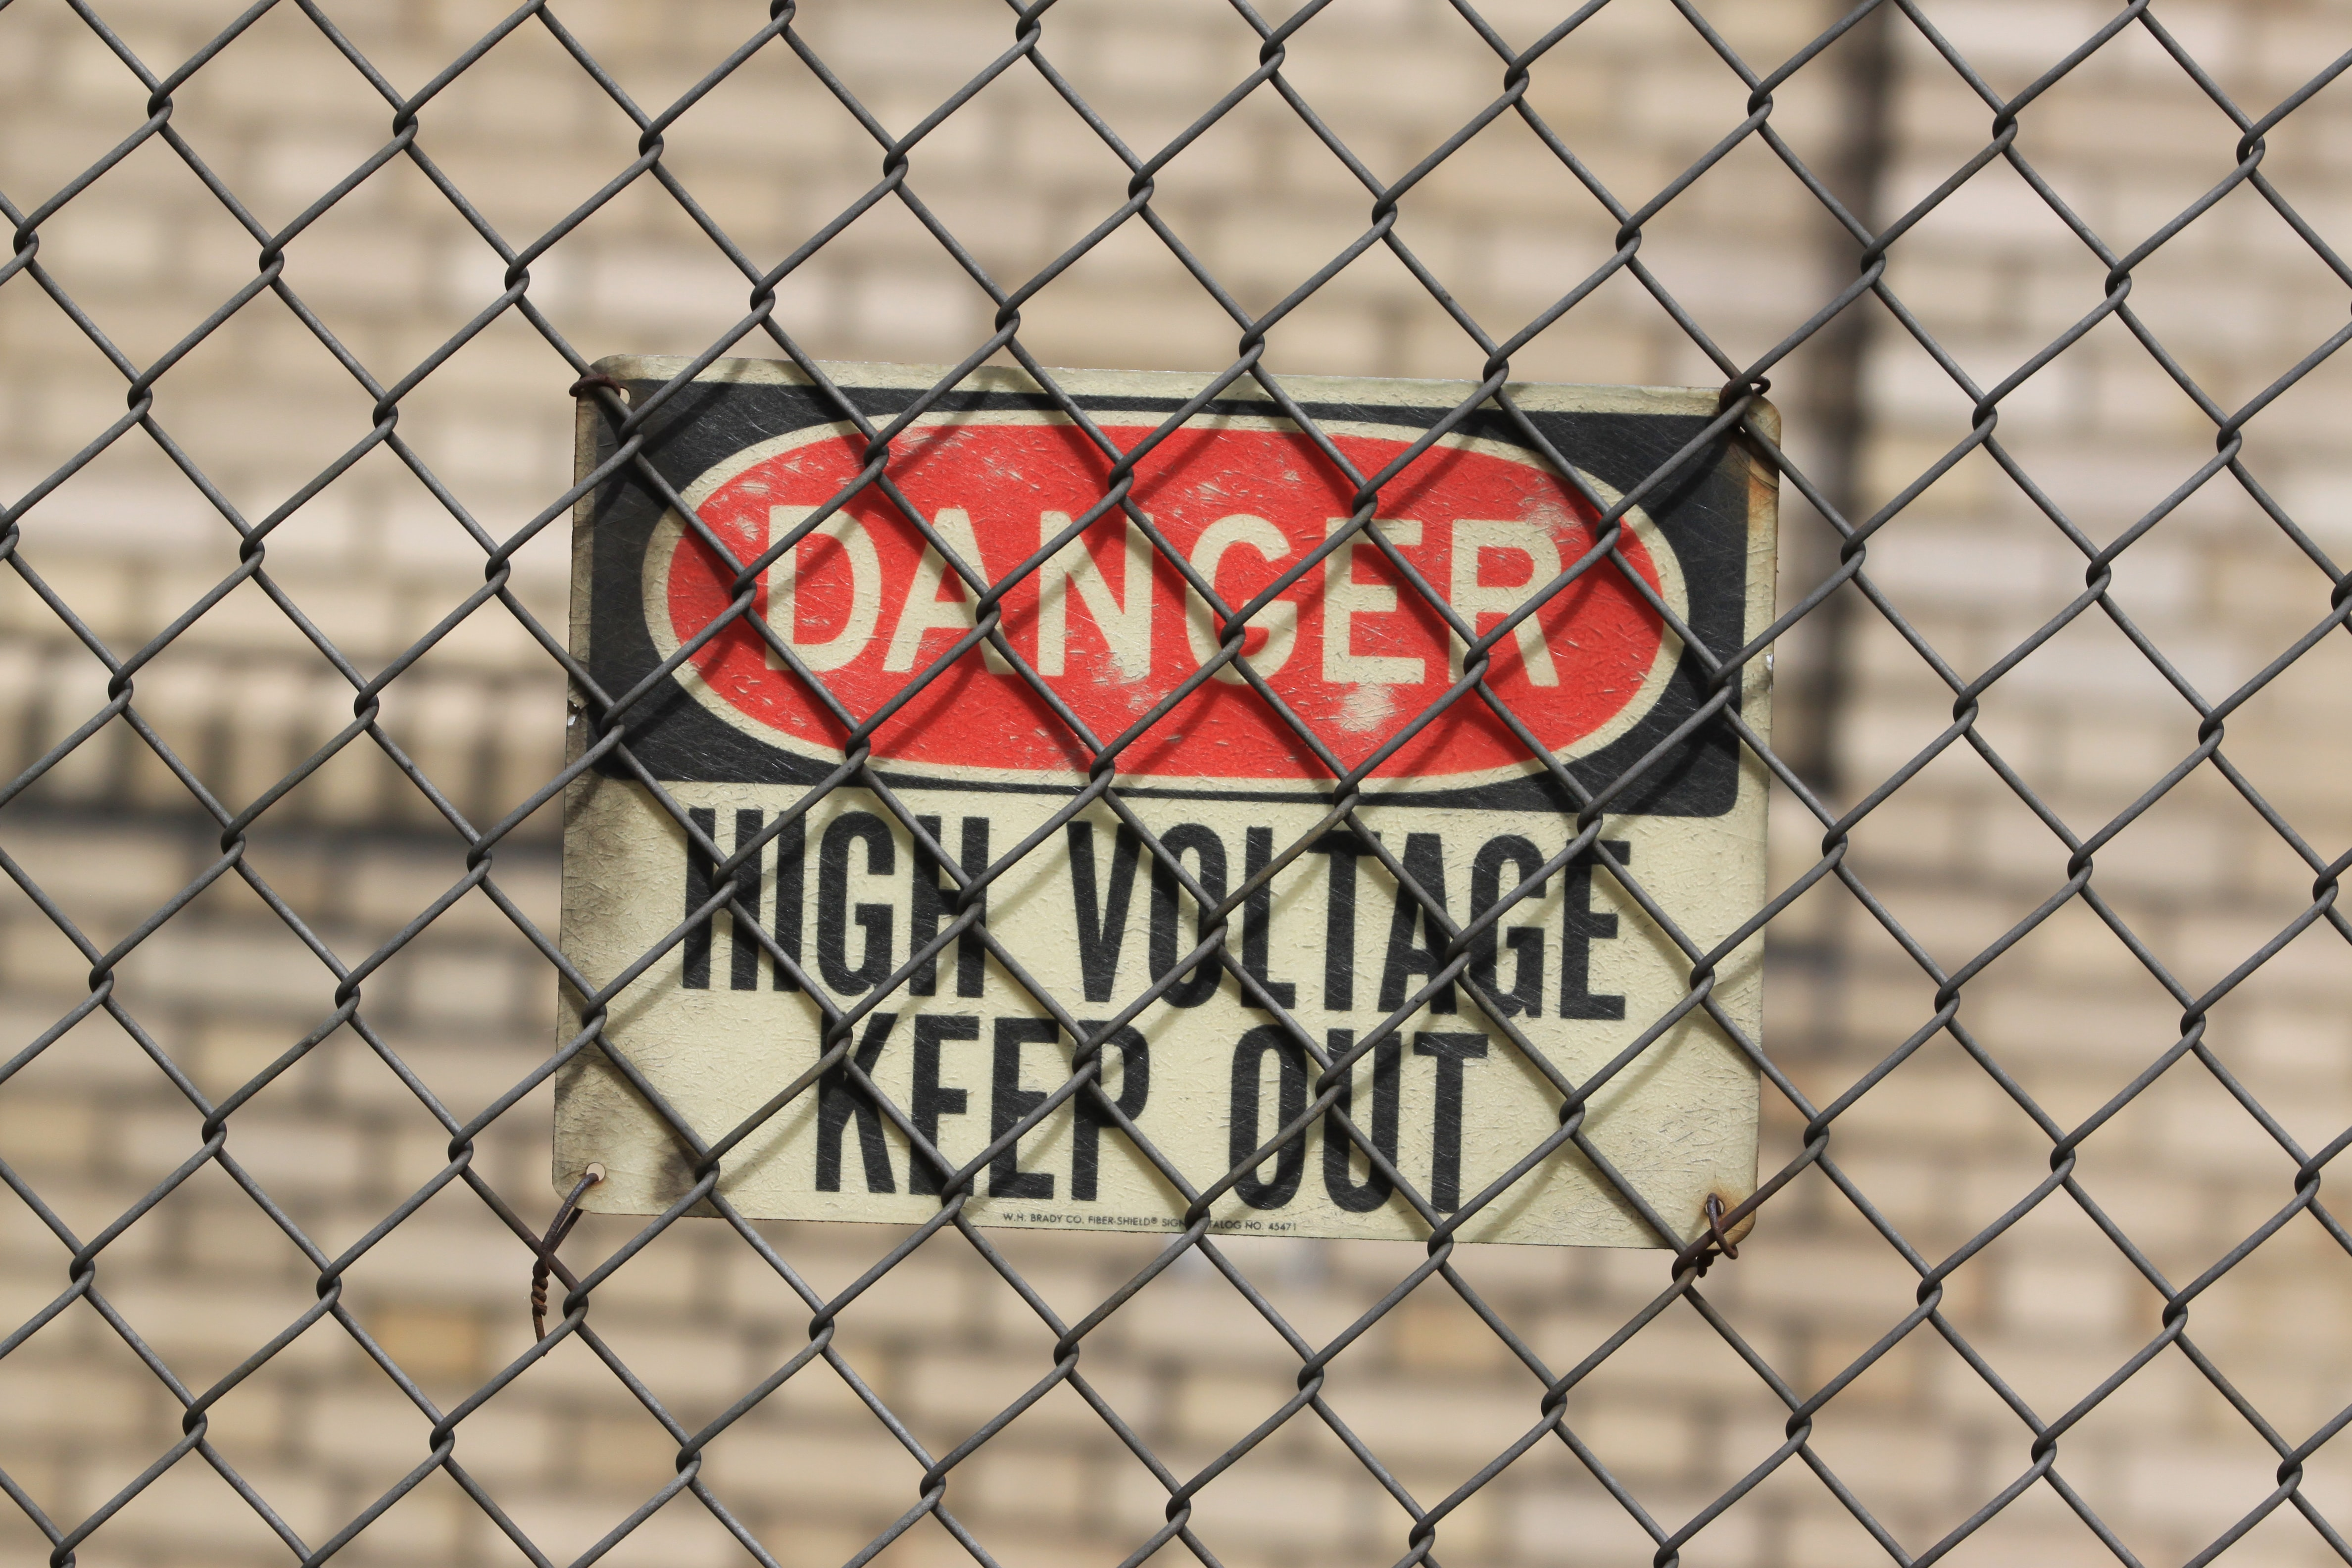 Danger sign behind a chainlink fence warns of high voltage